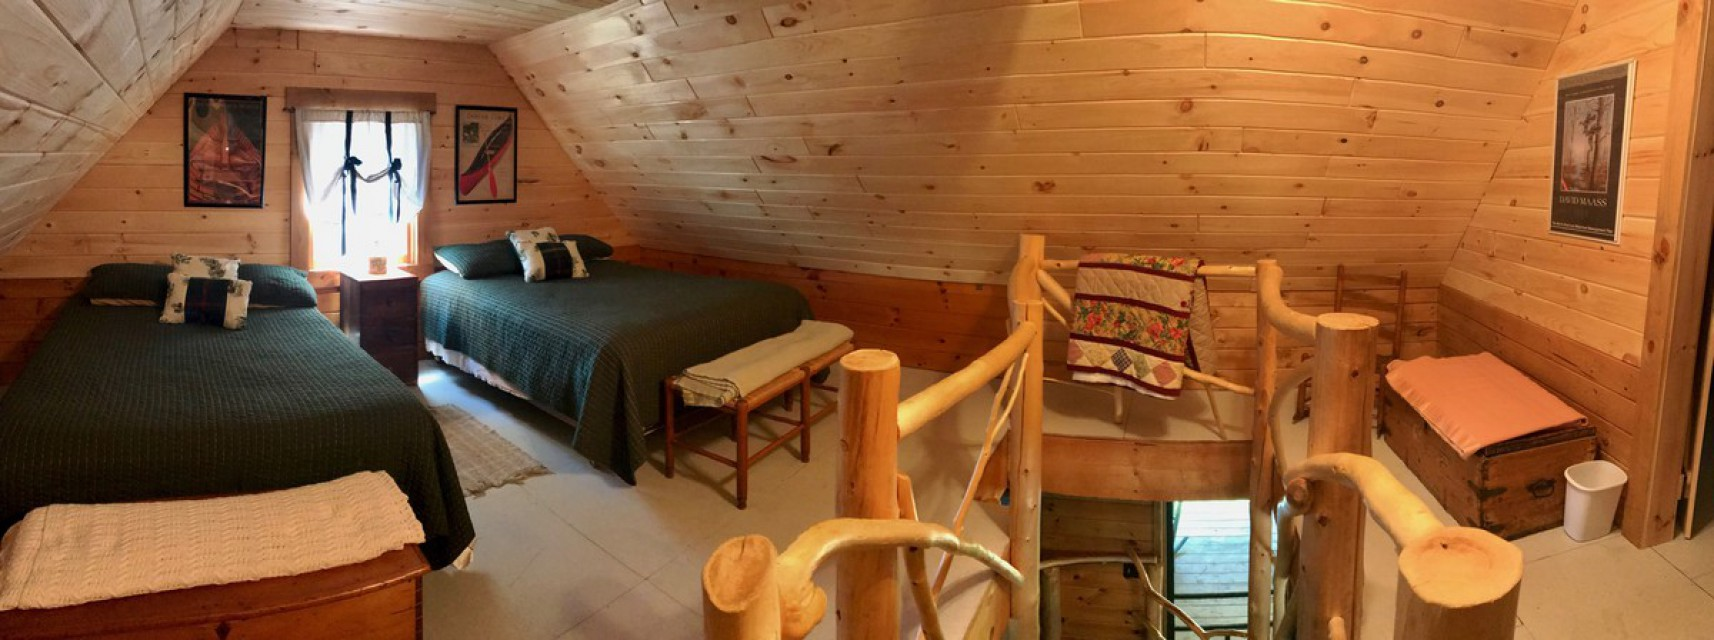 Two double beds in the loft